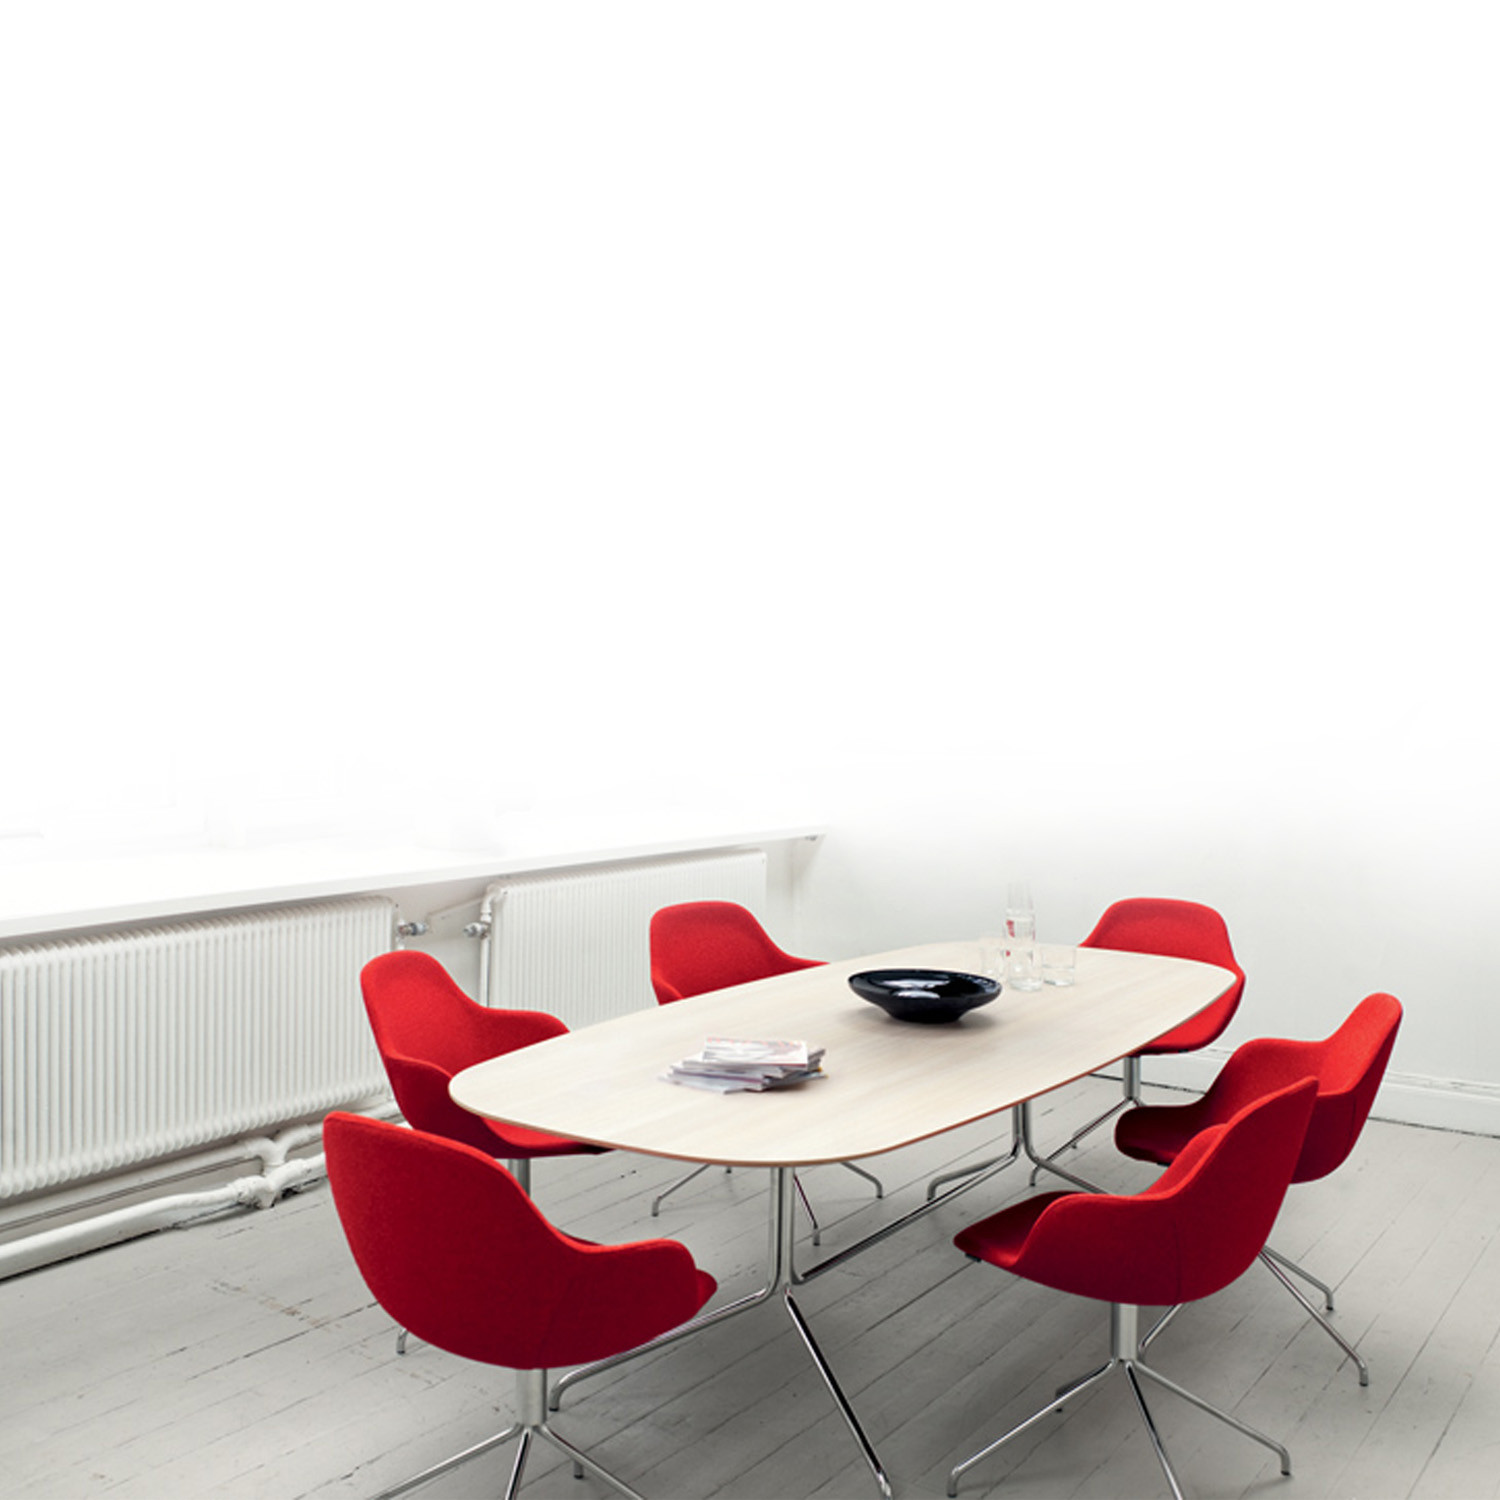 Palma Meeting Armchair by Offecct